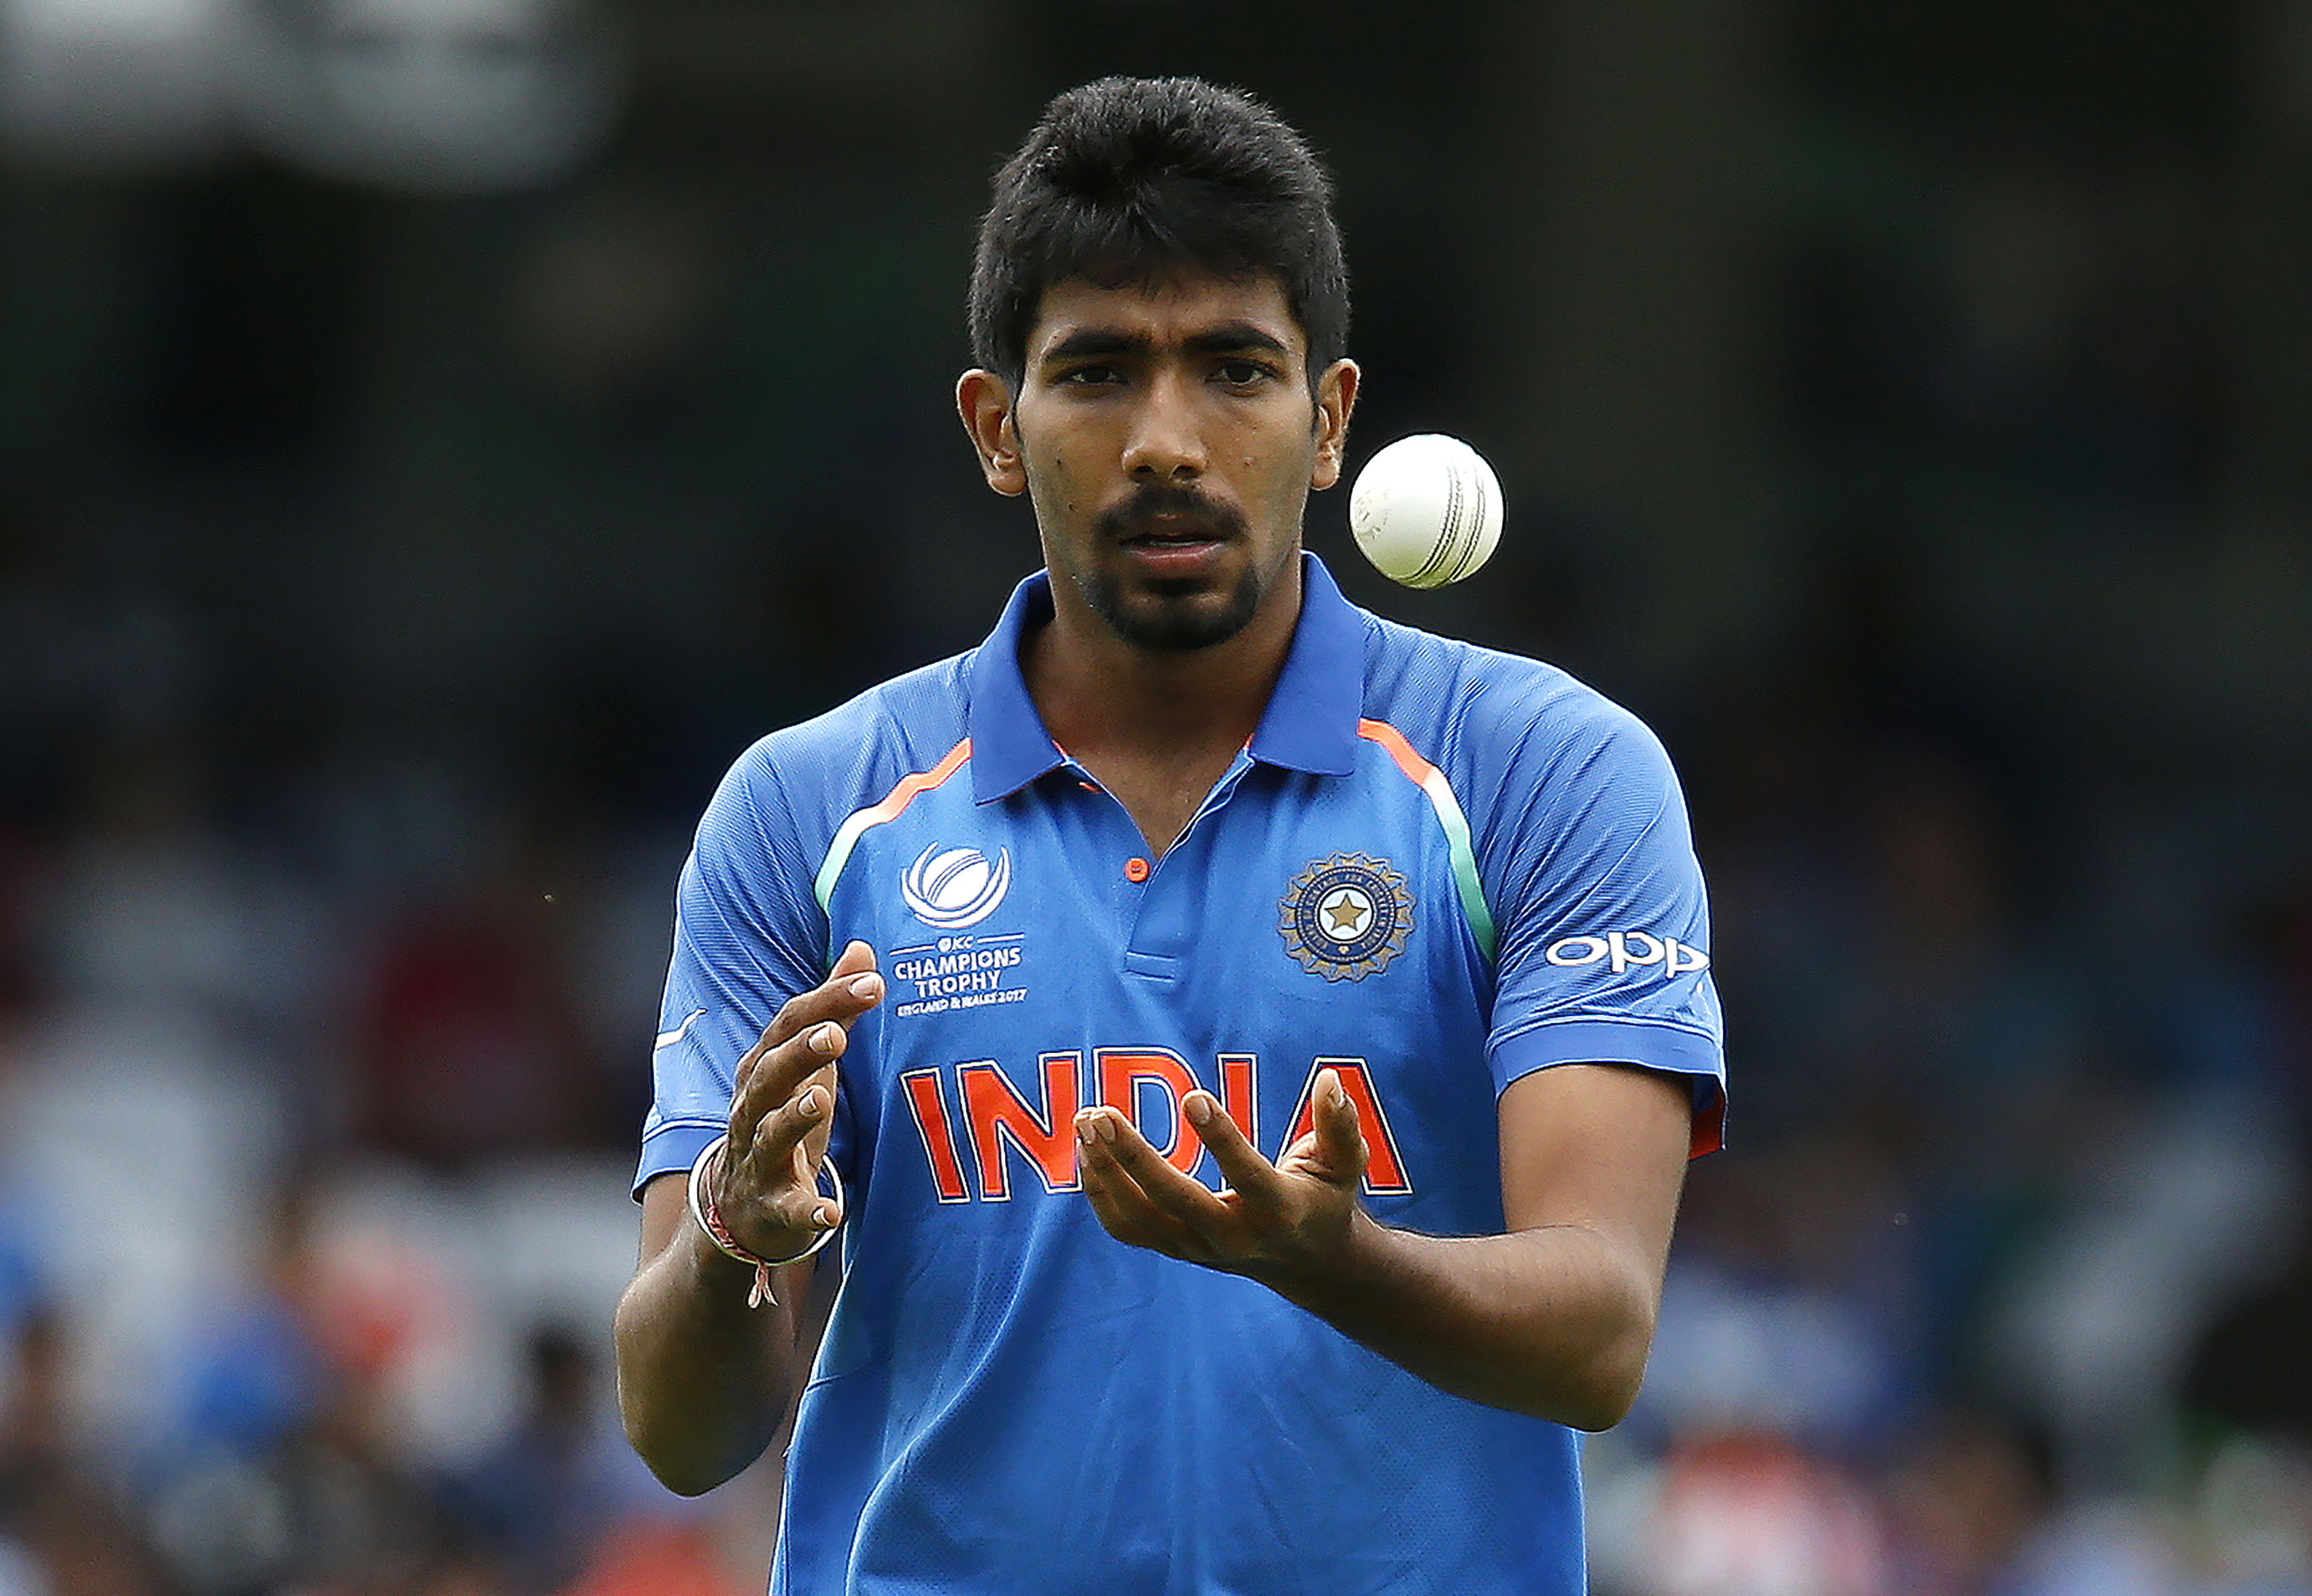 Jasprit Bumrah gets his maiden wicket off the ICC Champions Trophy. Photo: AFP.